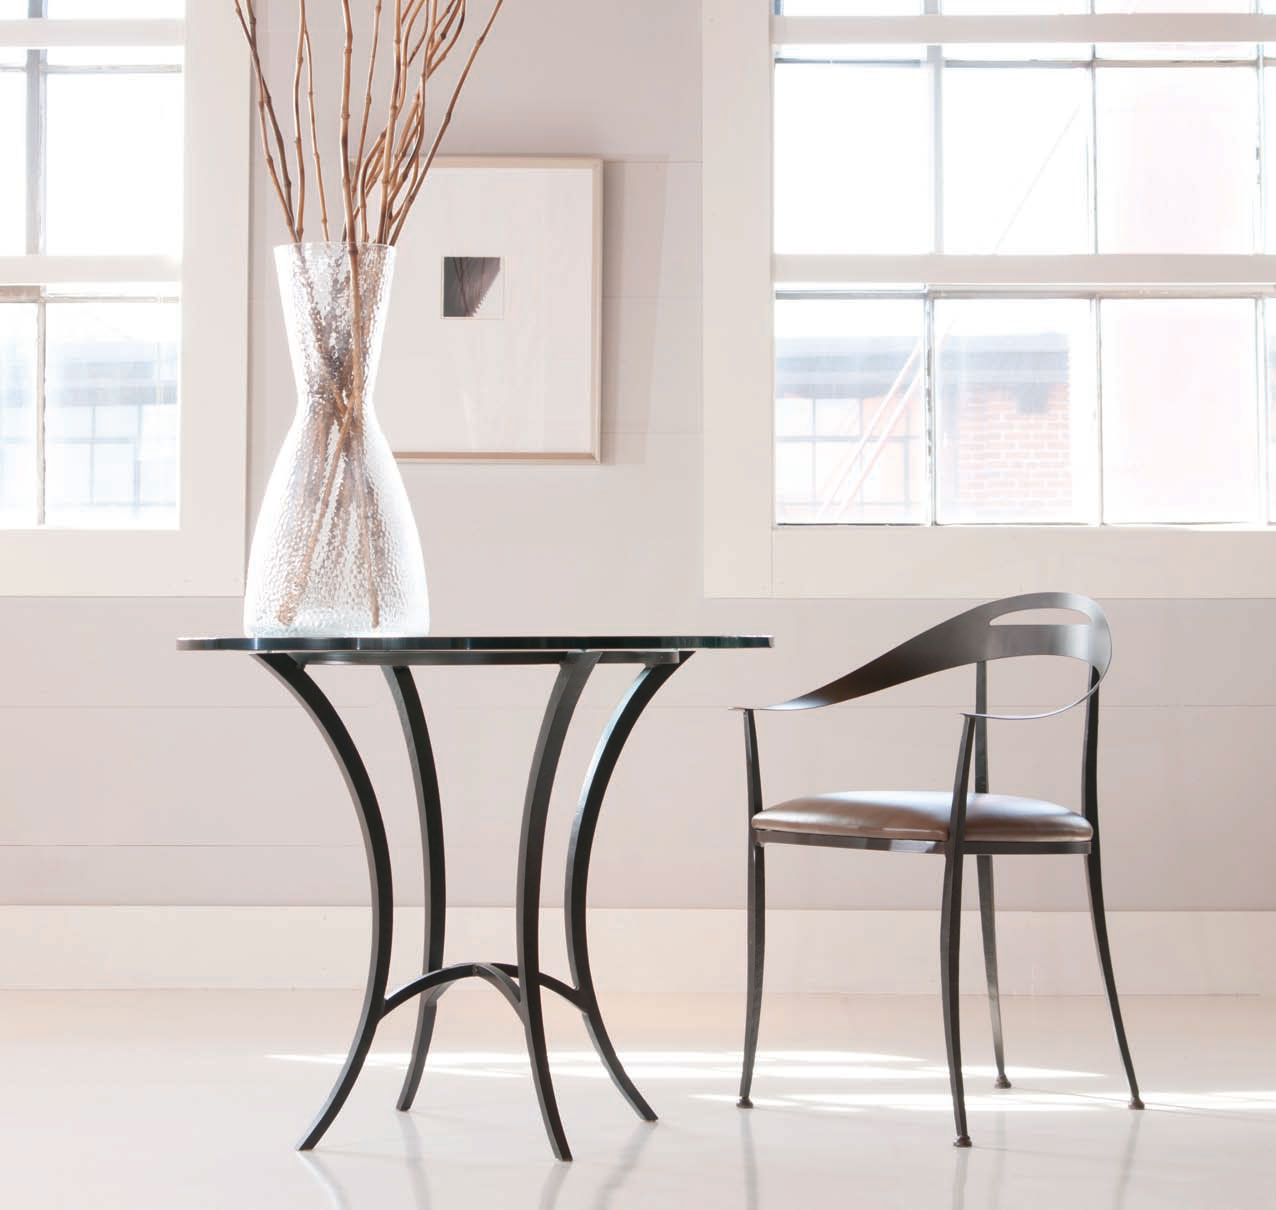 wrought iron kitchen chairs Dining Room Furniture Guide